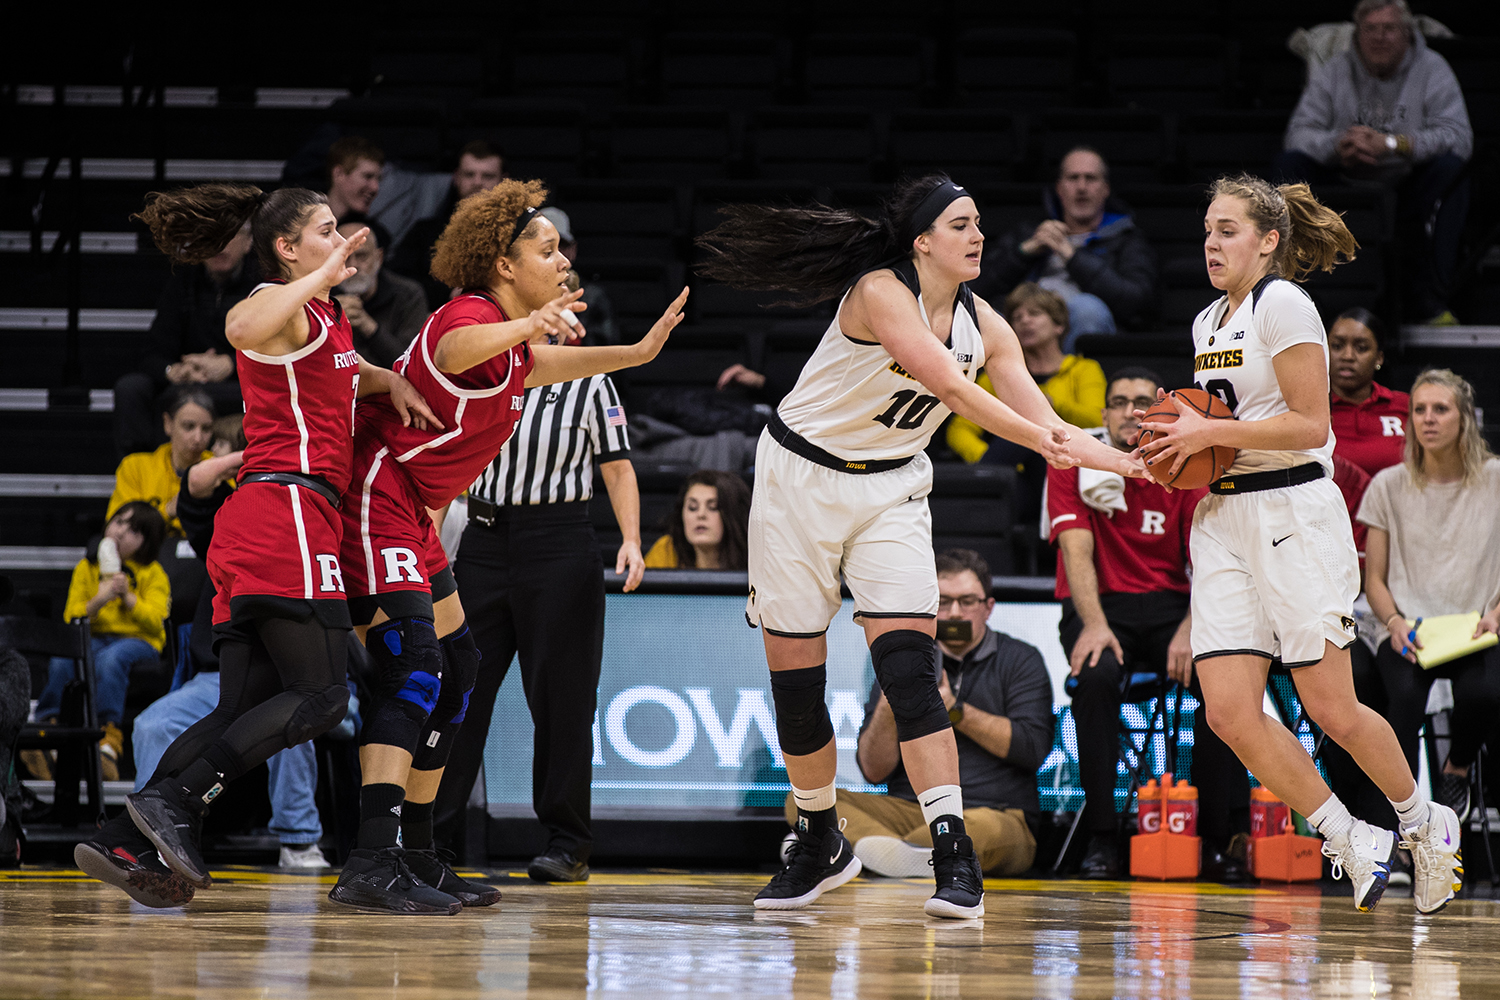 Iowa forward Megan Gustafson hands the ball to teammate Kathleen Doyle during a women's basketball matchup between Iowa and Rutgers at Carver-Hawkeye Arena on Wednesday, January 23, 2019. The Hawkeyes defeated the Scarlet Knights, 72-66.